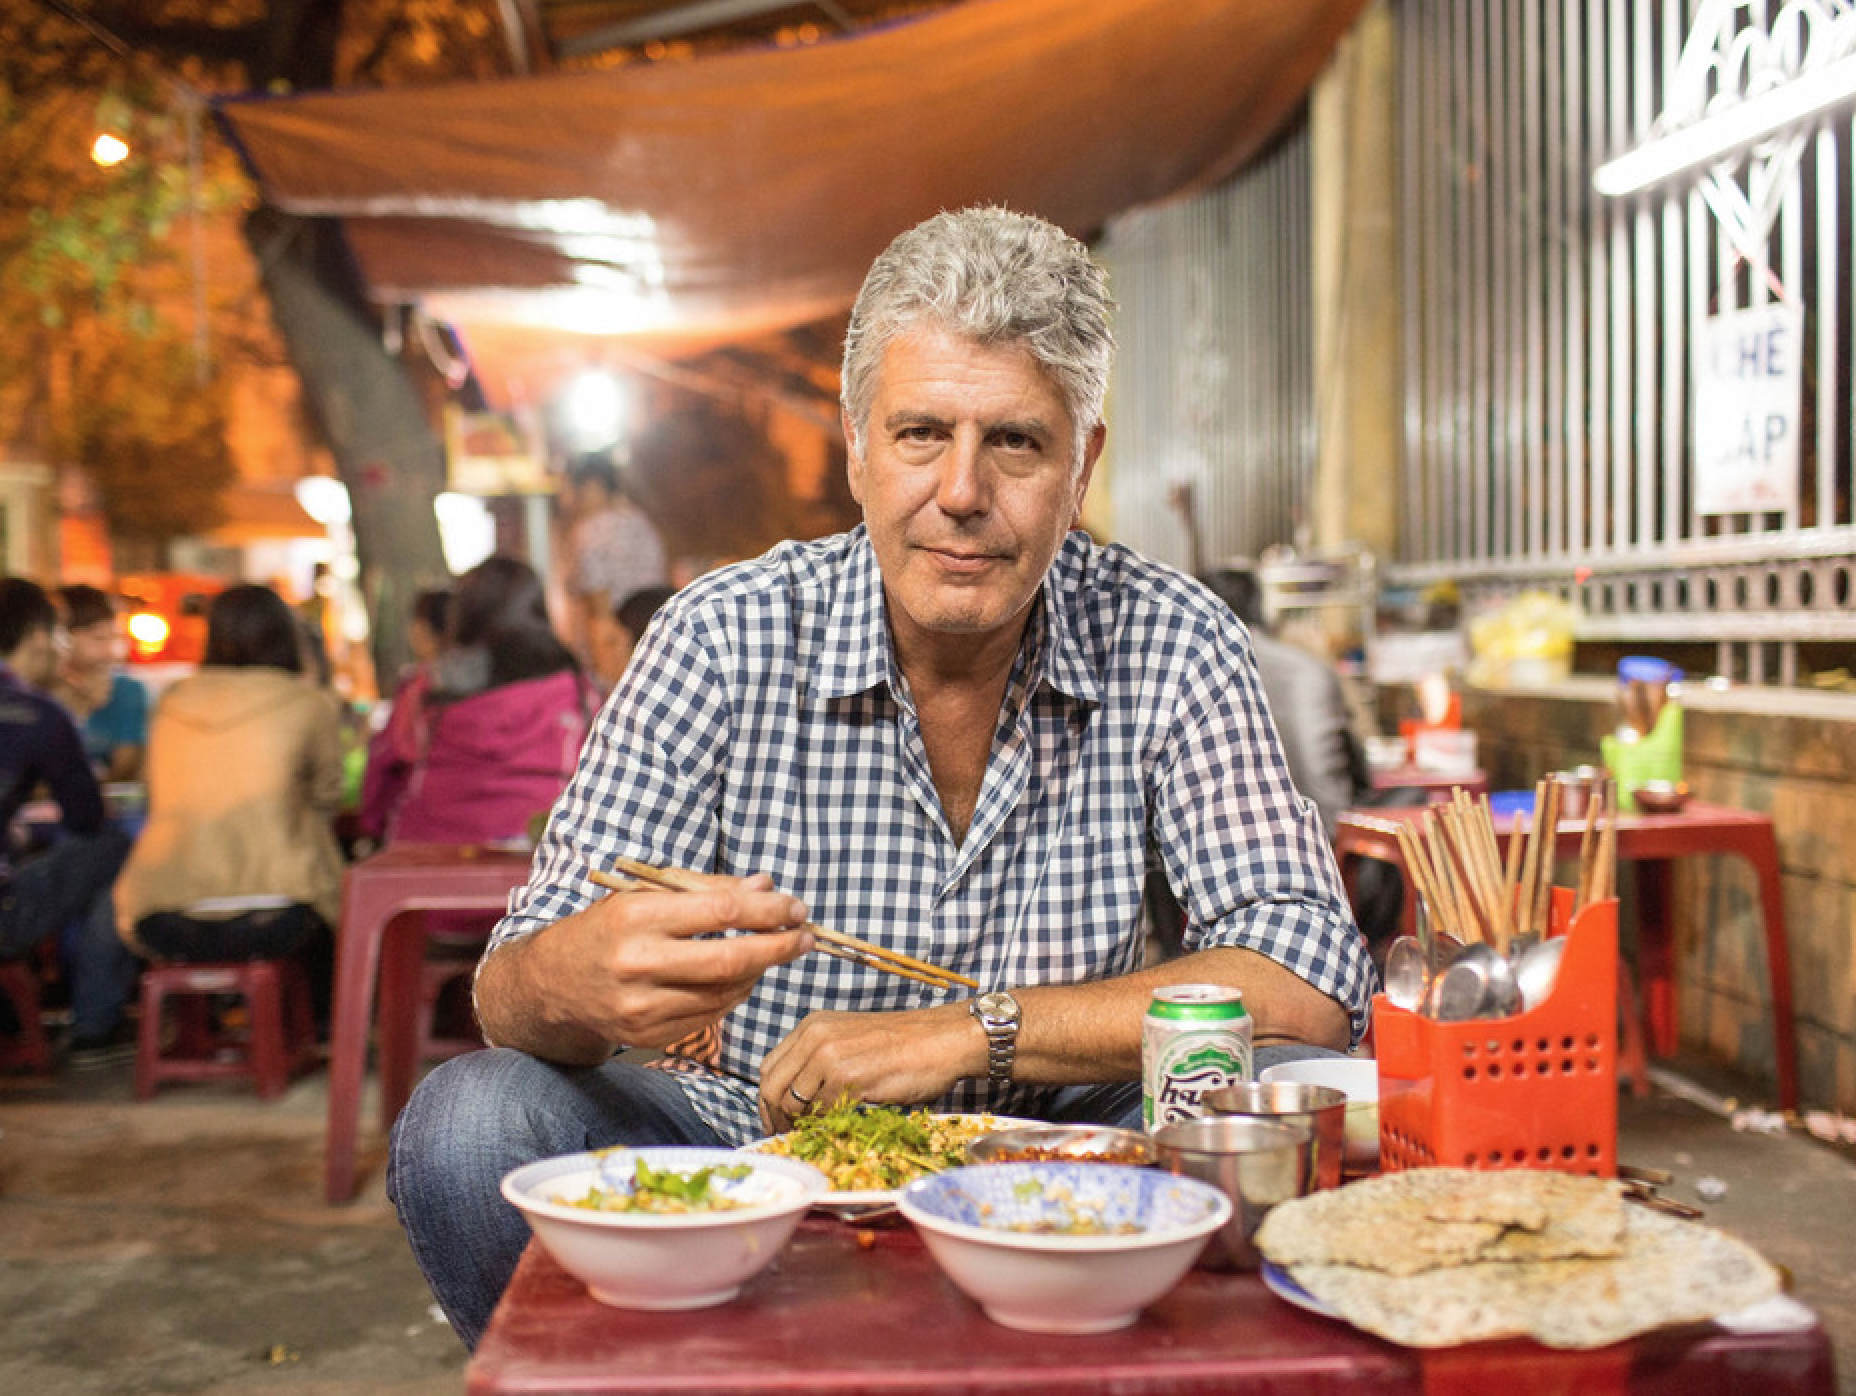 Dining Anthony Bourdain Food Market